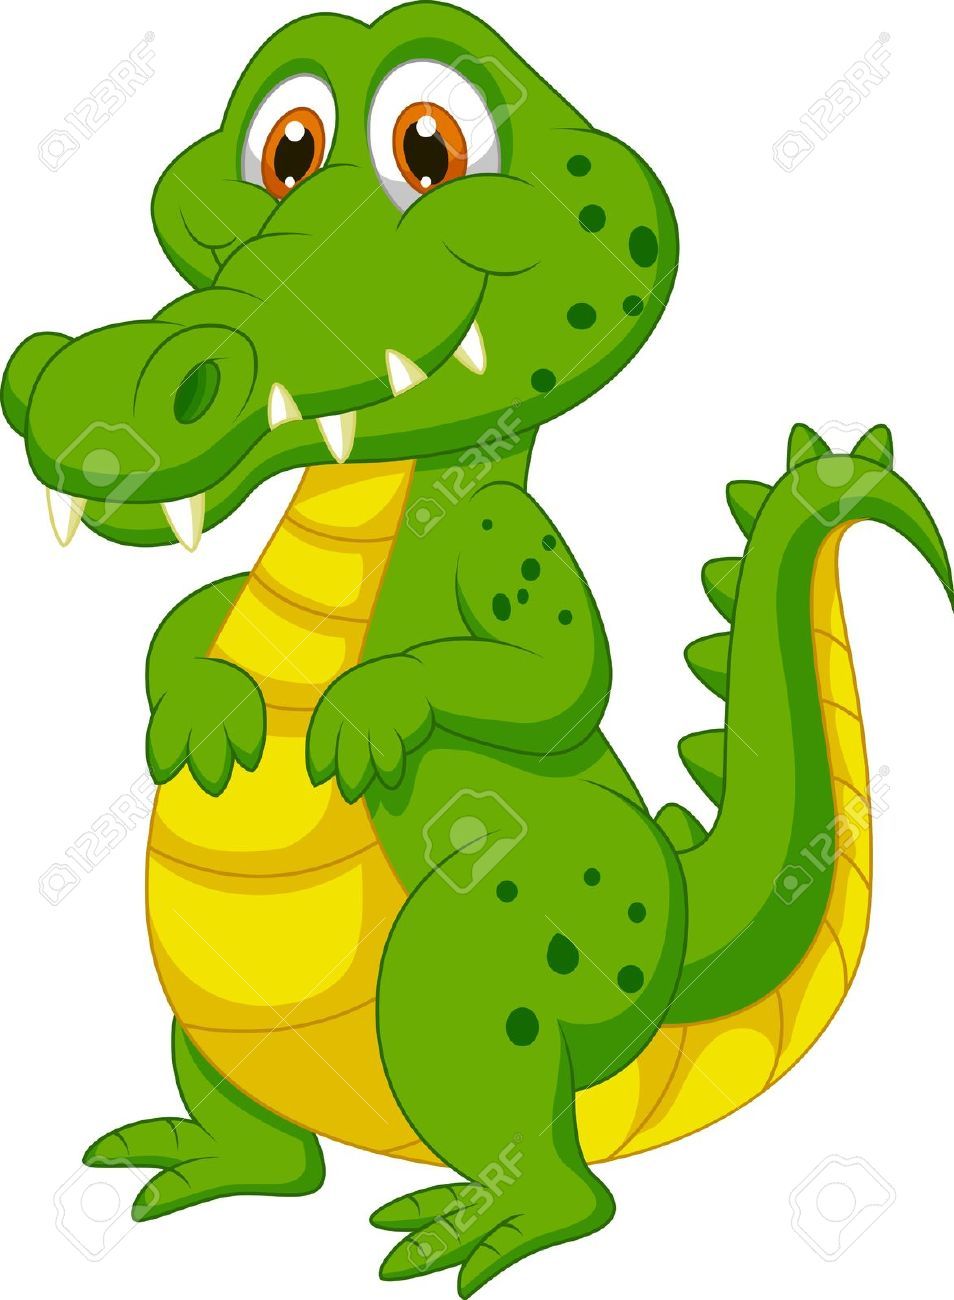 http://previews.123rf.com/images/tigatelu/tigatelu1309/tigatelu130900001/22466890-Cute-crocodile-cartoon--Stock-Vector-jungle.jpg